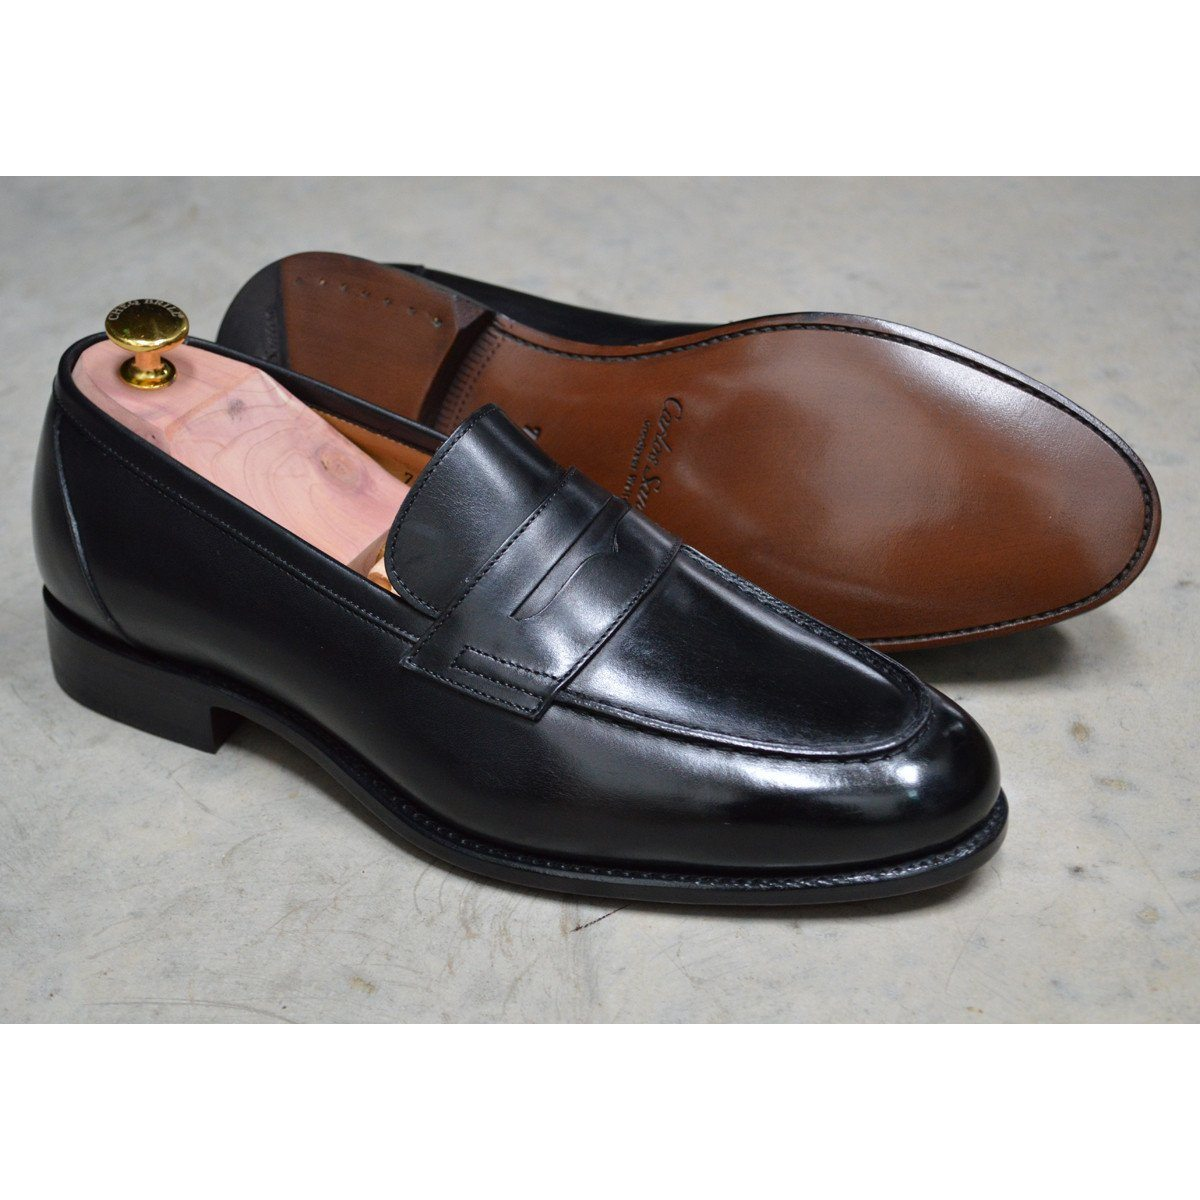 2be607f0df7c Carlos Santos Penny Loafer in Black Calf - A Fine Pair of Shoes ...